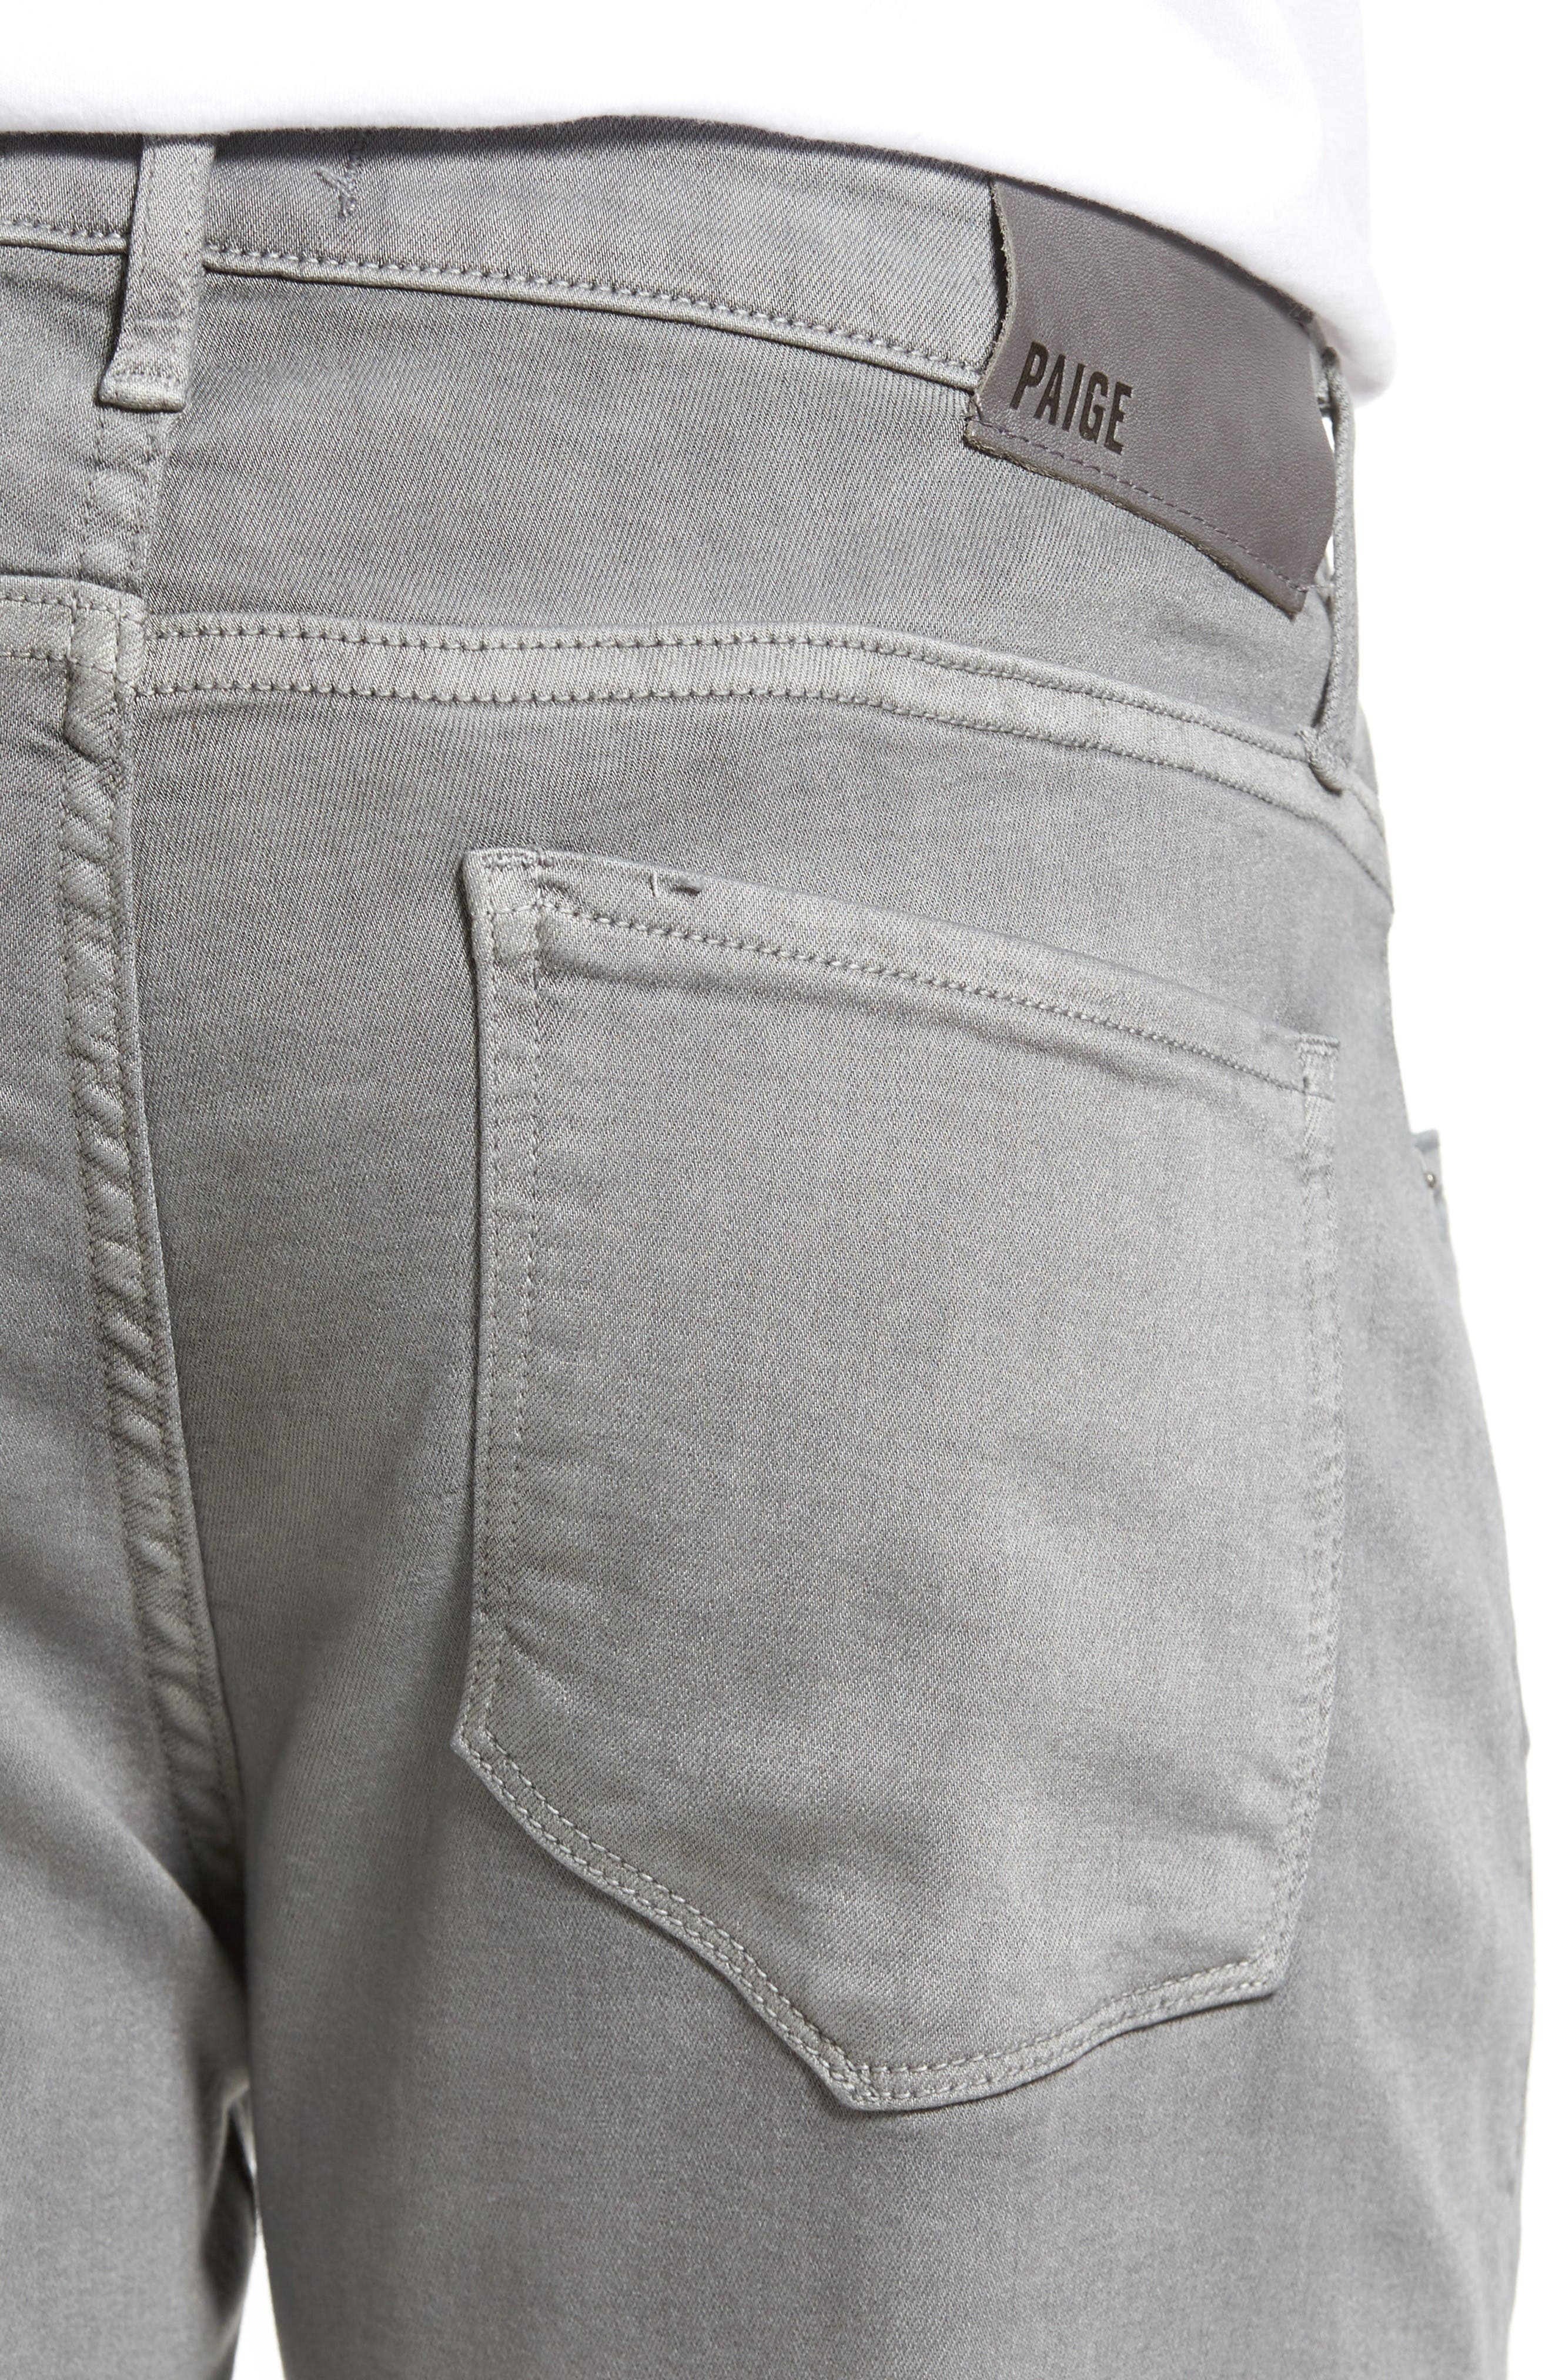 Transcend - Lennox Slim Fit Jeans,                             Alternate thumbnail 4, color,                             Grey Clay